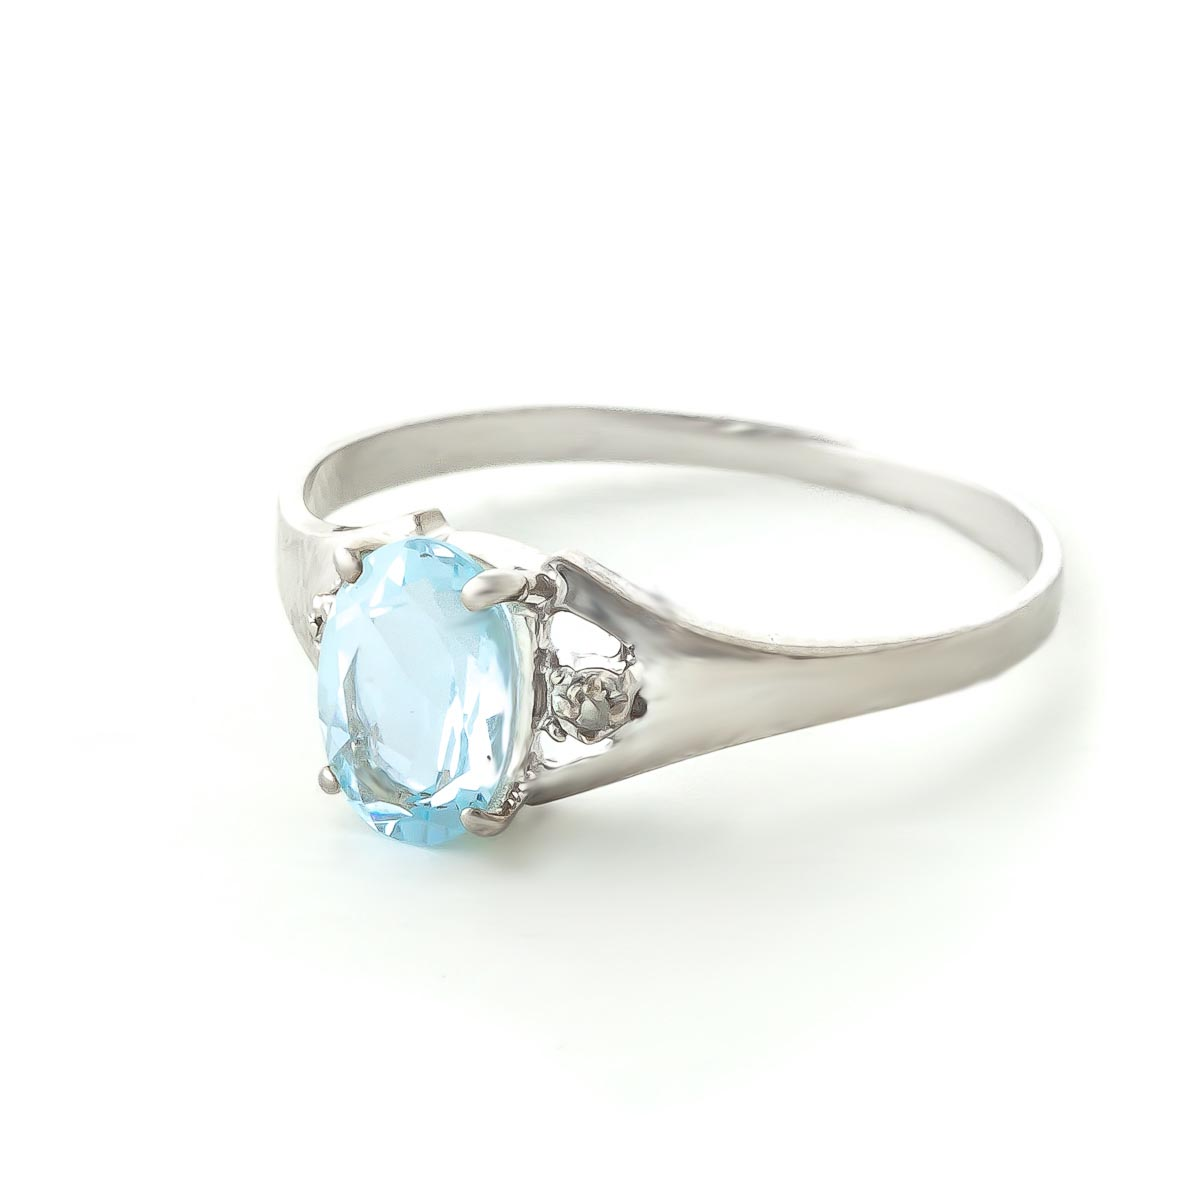 Aquamarine & Diamond Desire Ring in Sterling Silver